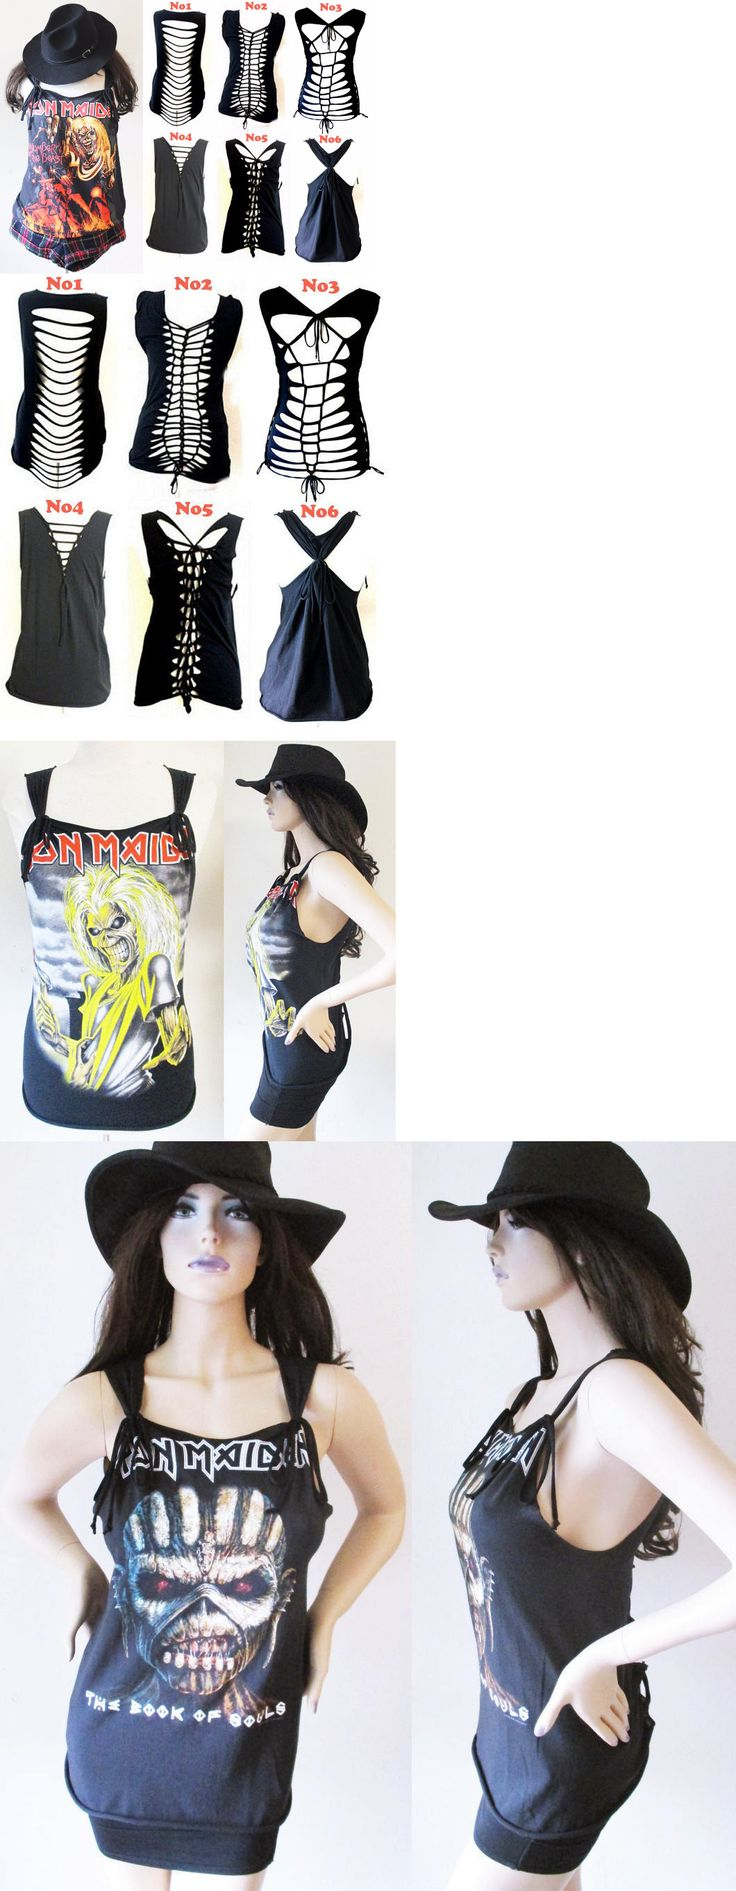 Women T Shirts: Iron Maiden With Special Cut Out Back Tank Top S-Xl Tee T Shirt -> BUY IT NOW ONLY: $39.99 on eBay!